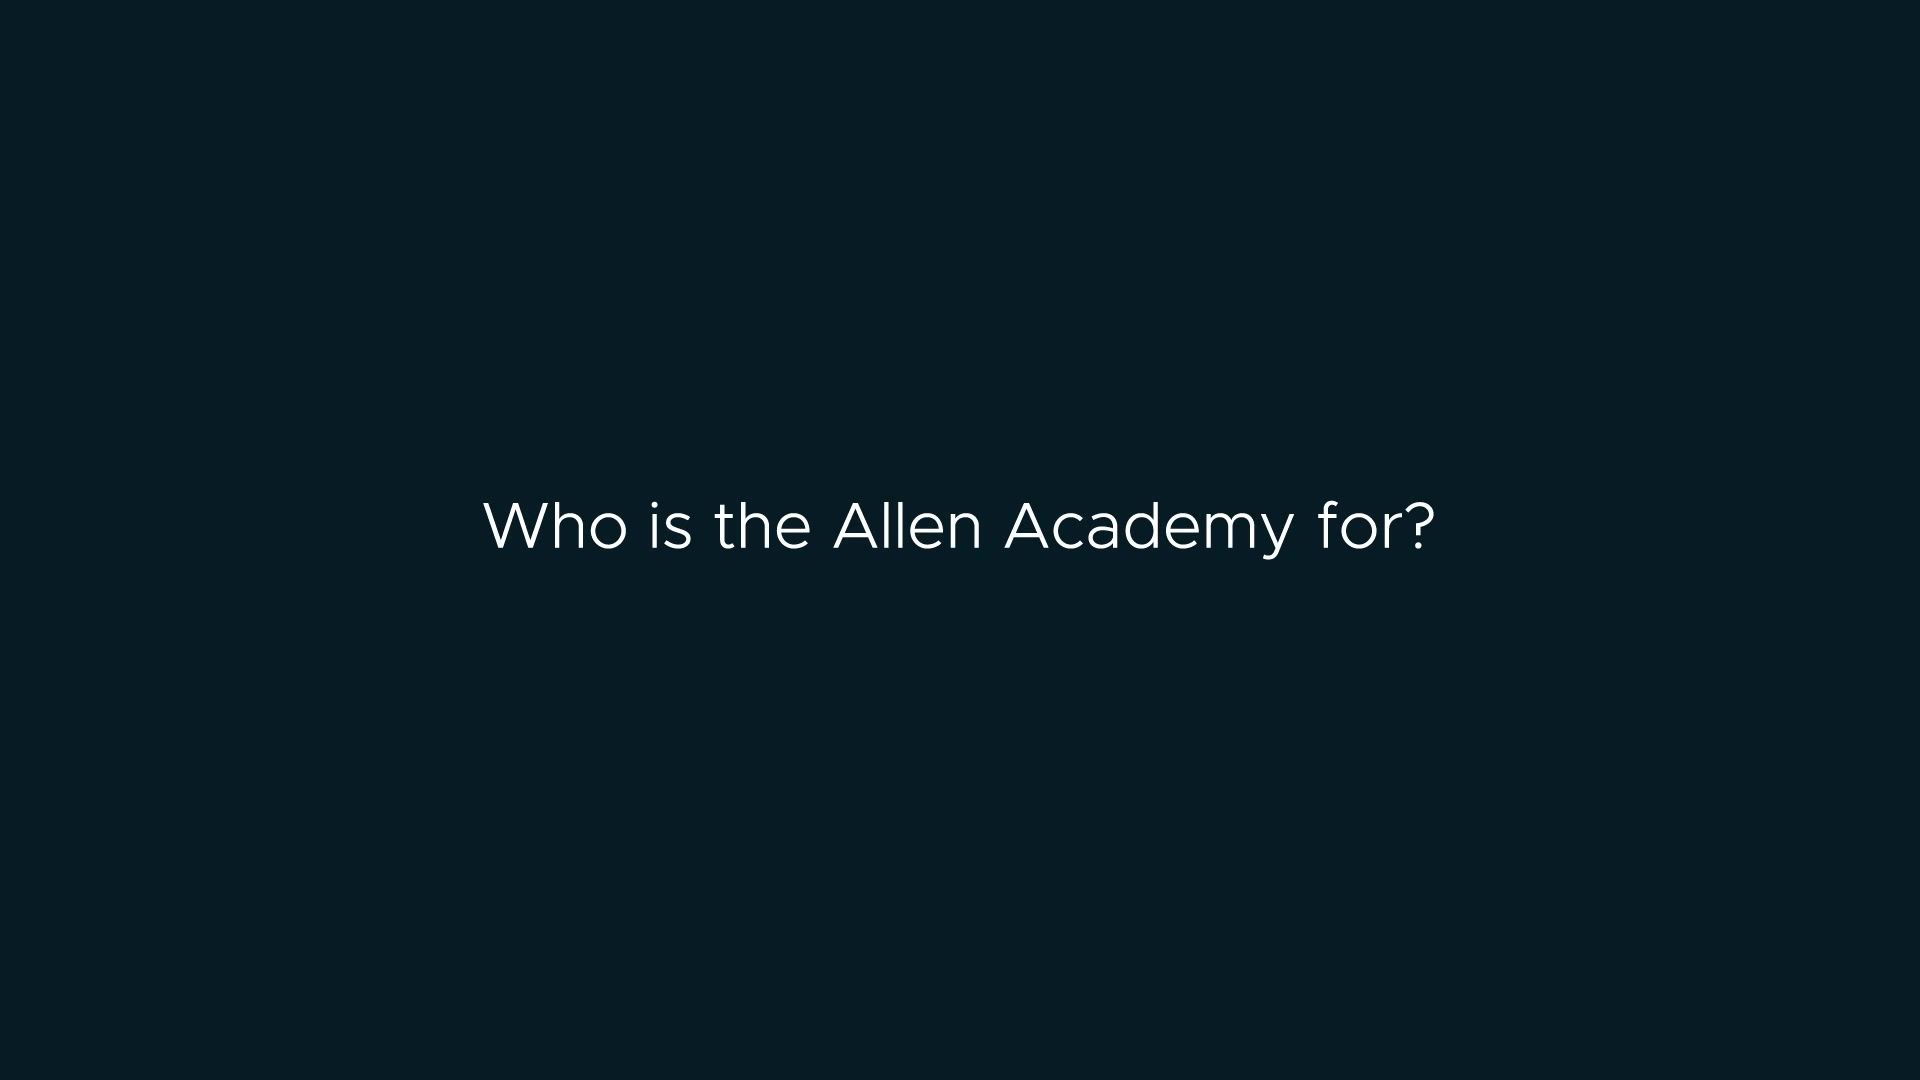 Allen Academy Vision Q2 - Who is it for